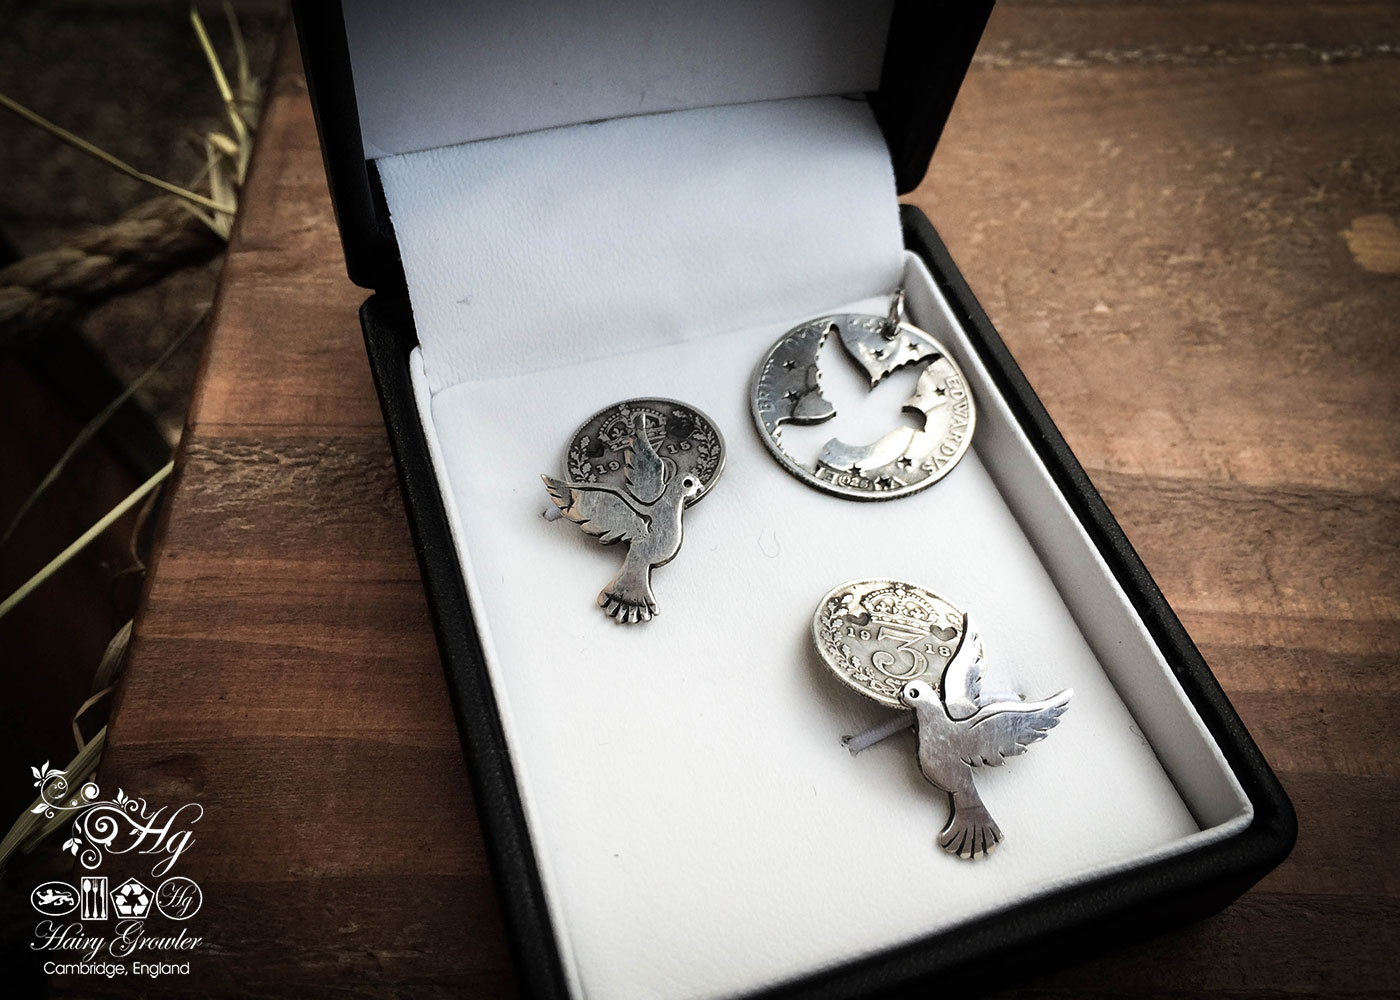 peace dove cufflinks handcrafted and recycled from sterling silver shillings and threepence coins